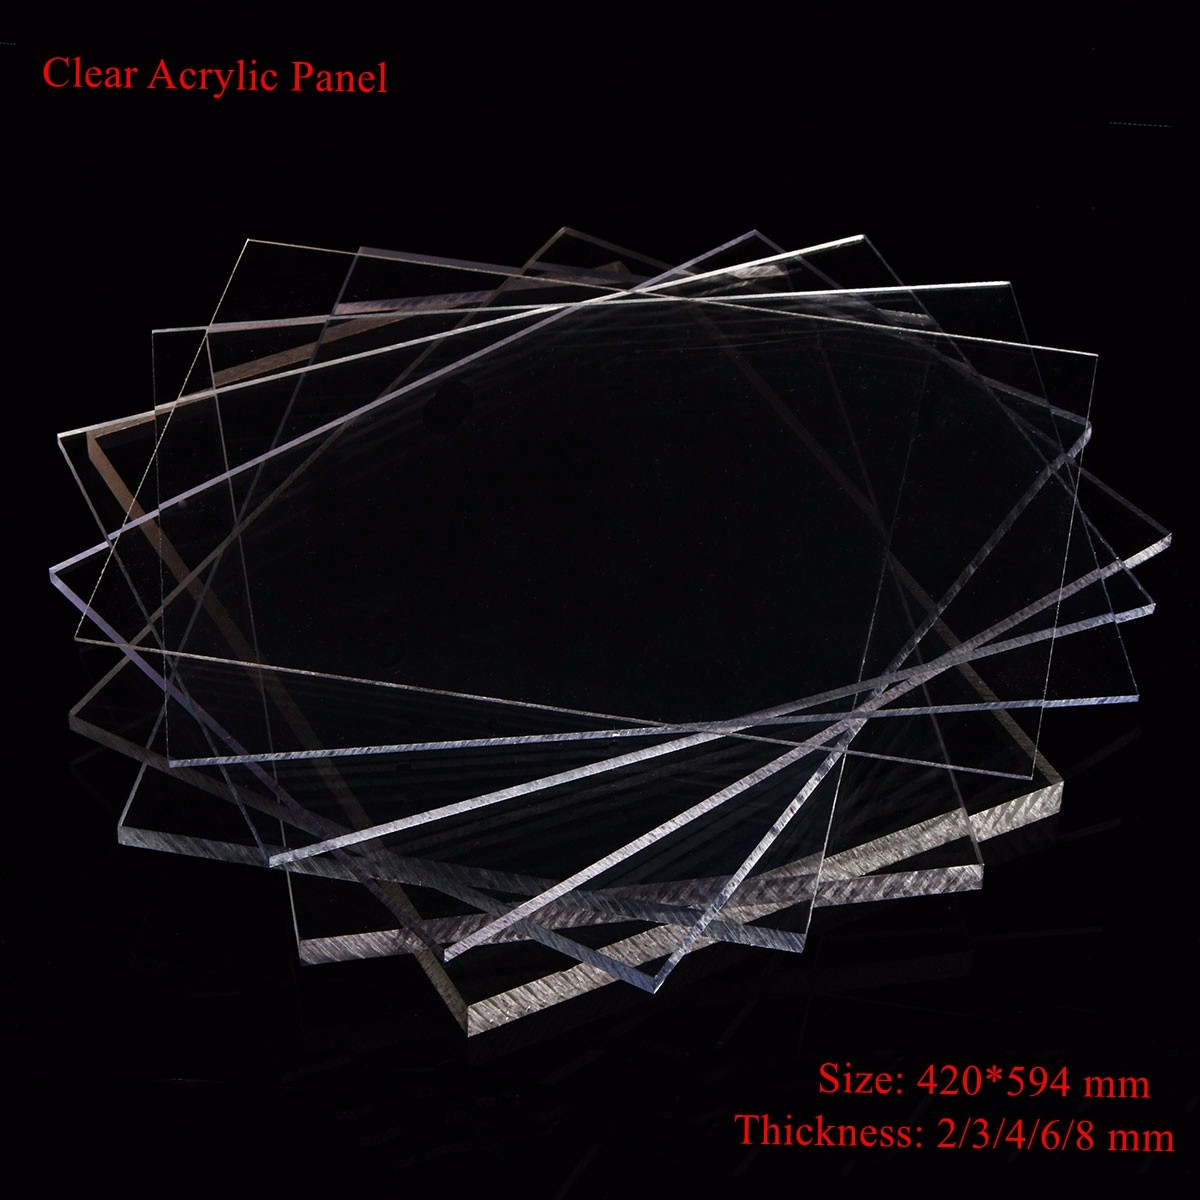 1pc 2/3/4/6/8mm Acrylic Thickness Clear Perspex Sheet Cut 420x594mm Acrylic Sheet Plastic Panel Durable Doors